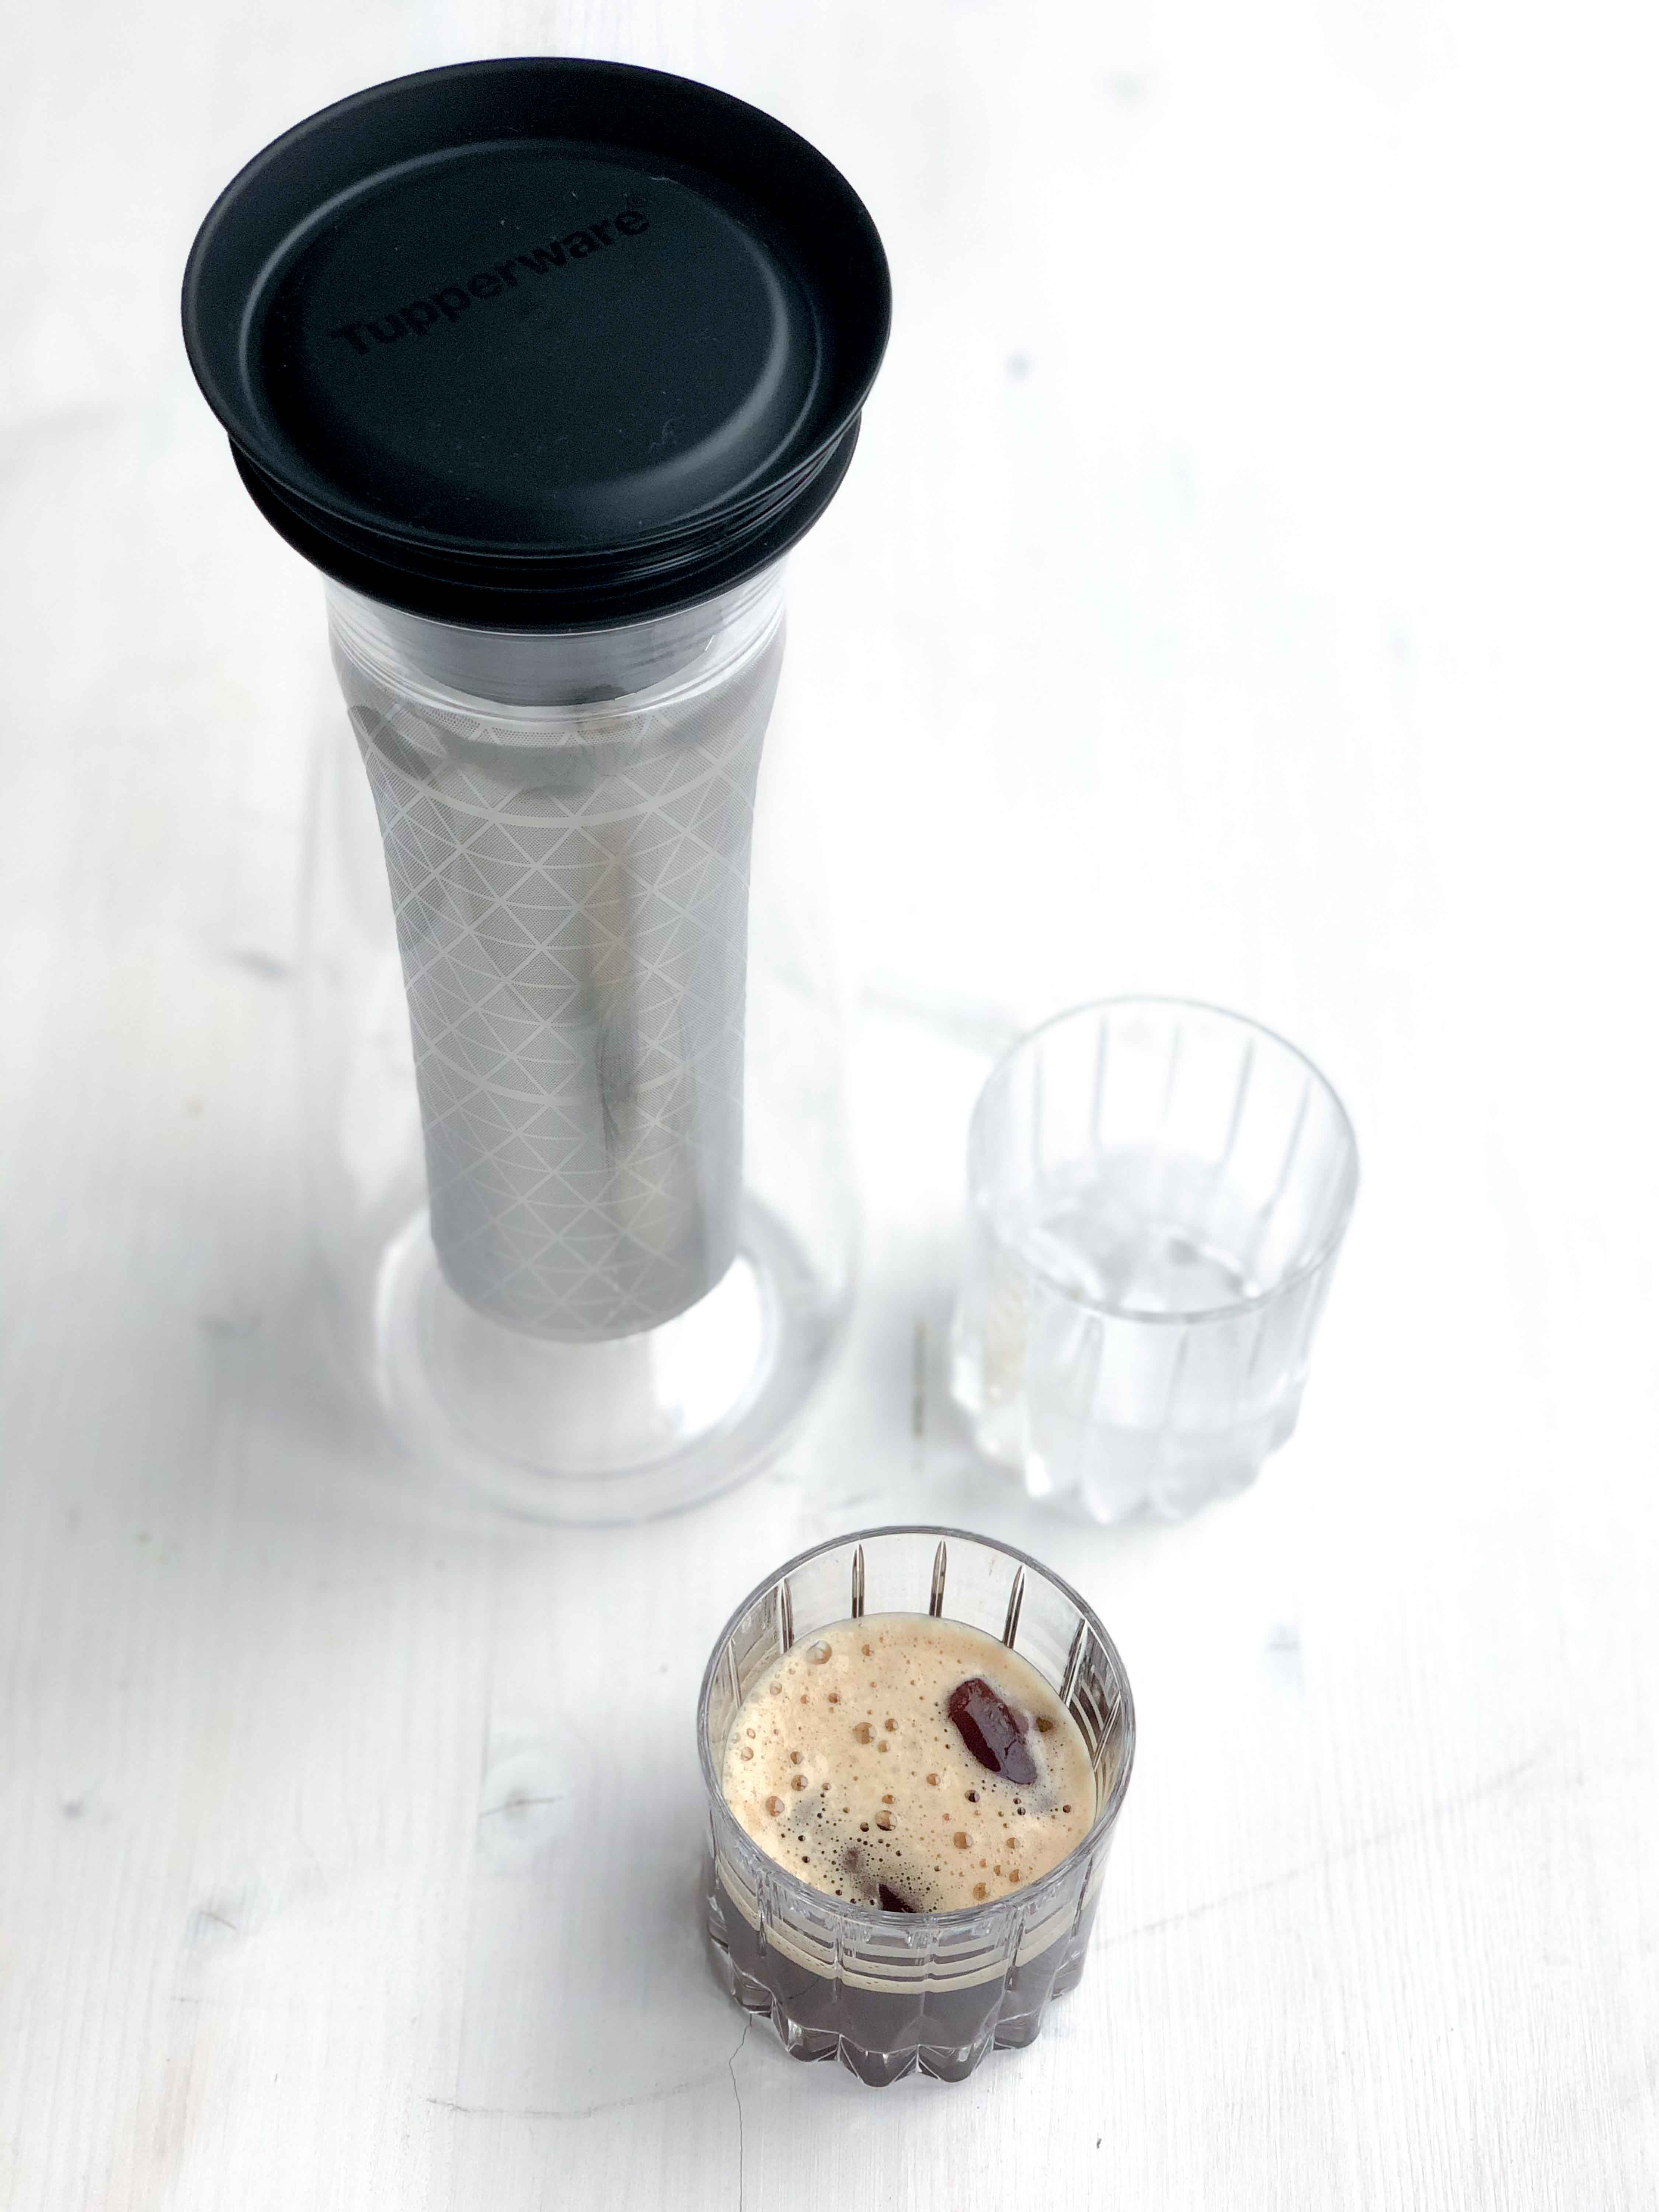 Cold Brew on the Rocks | Tupperware Cold Brew Karaffe | SOAP|KITCHEN|STYLE